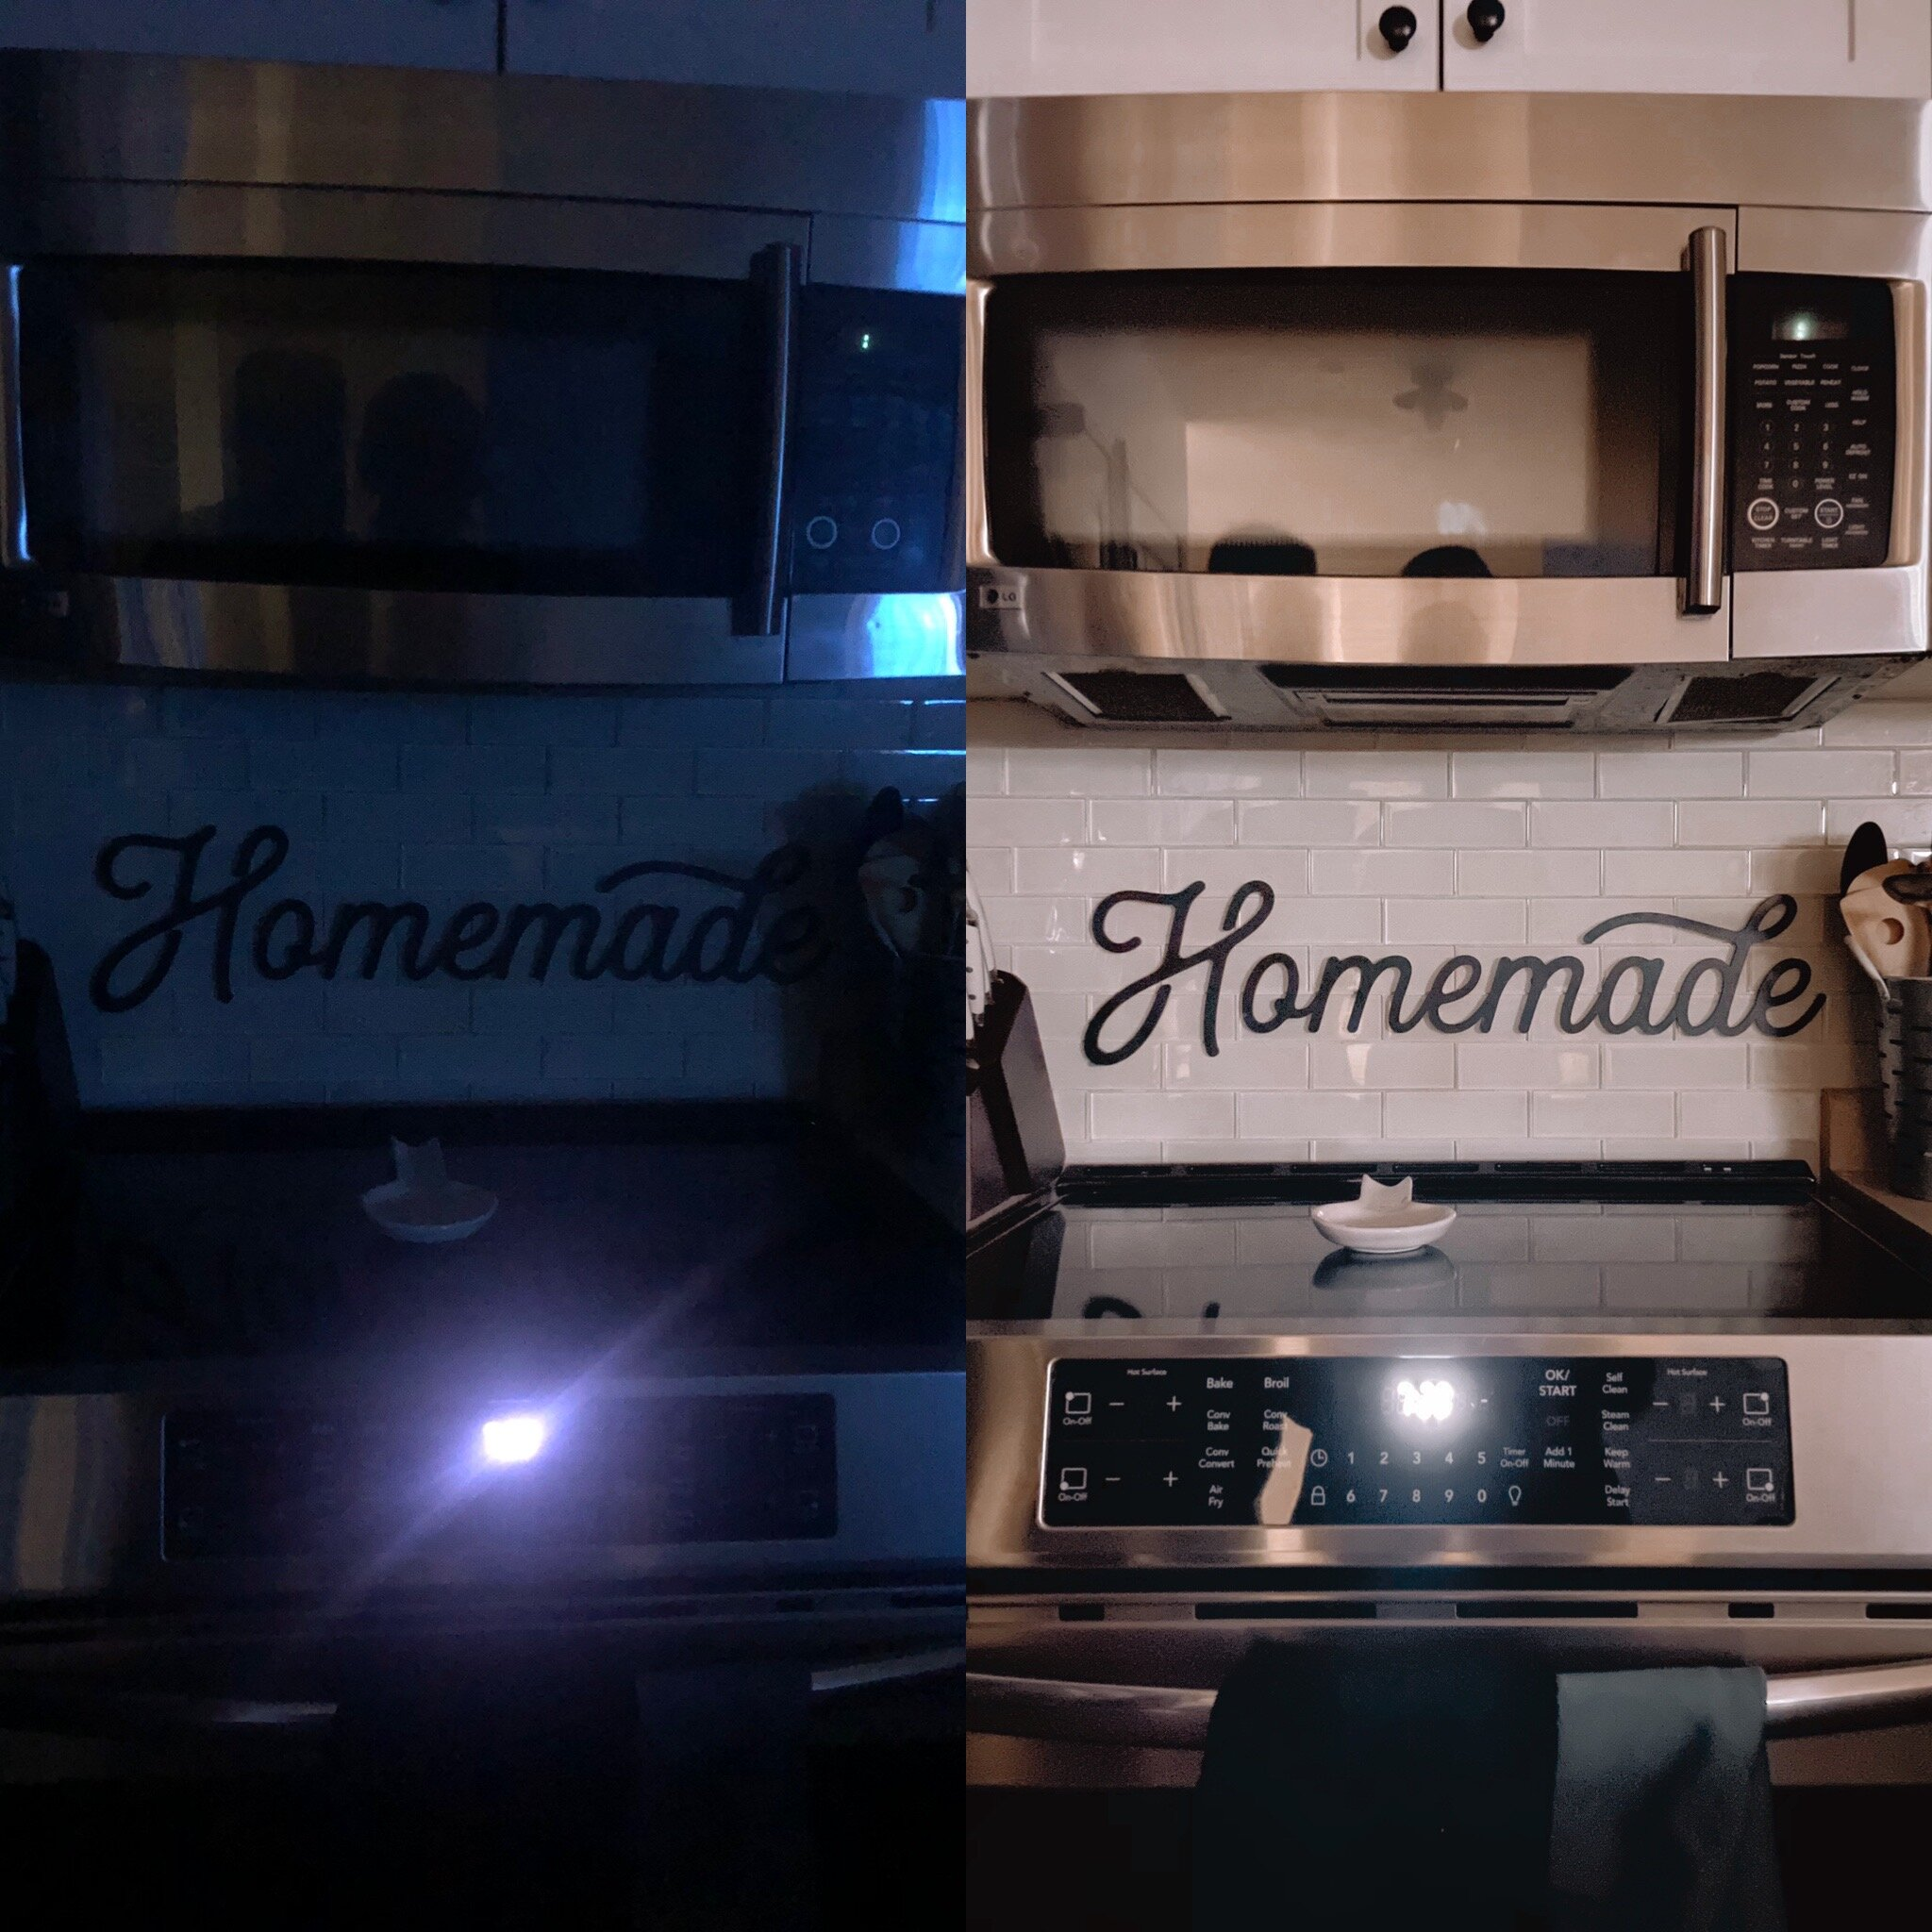 Lights entirely off, shooting both images at the same time (as you can see my husband and I in the microwave reflection) on the left older iPhone X and on the right, iPhone 12 PRO in night mode.